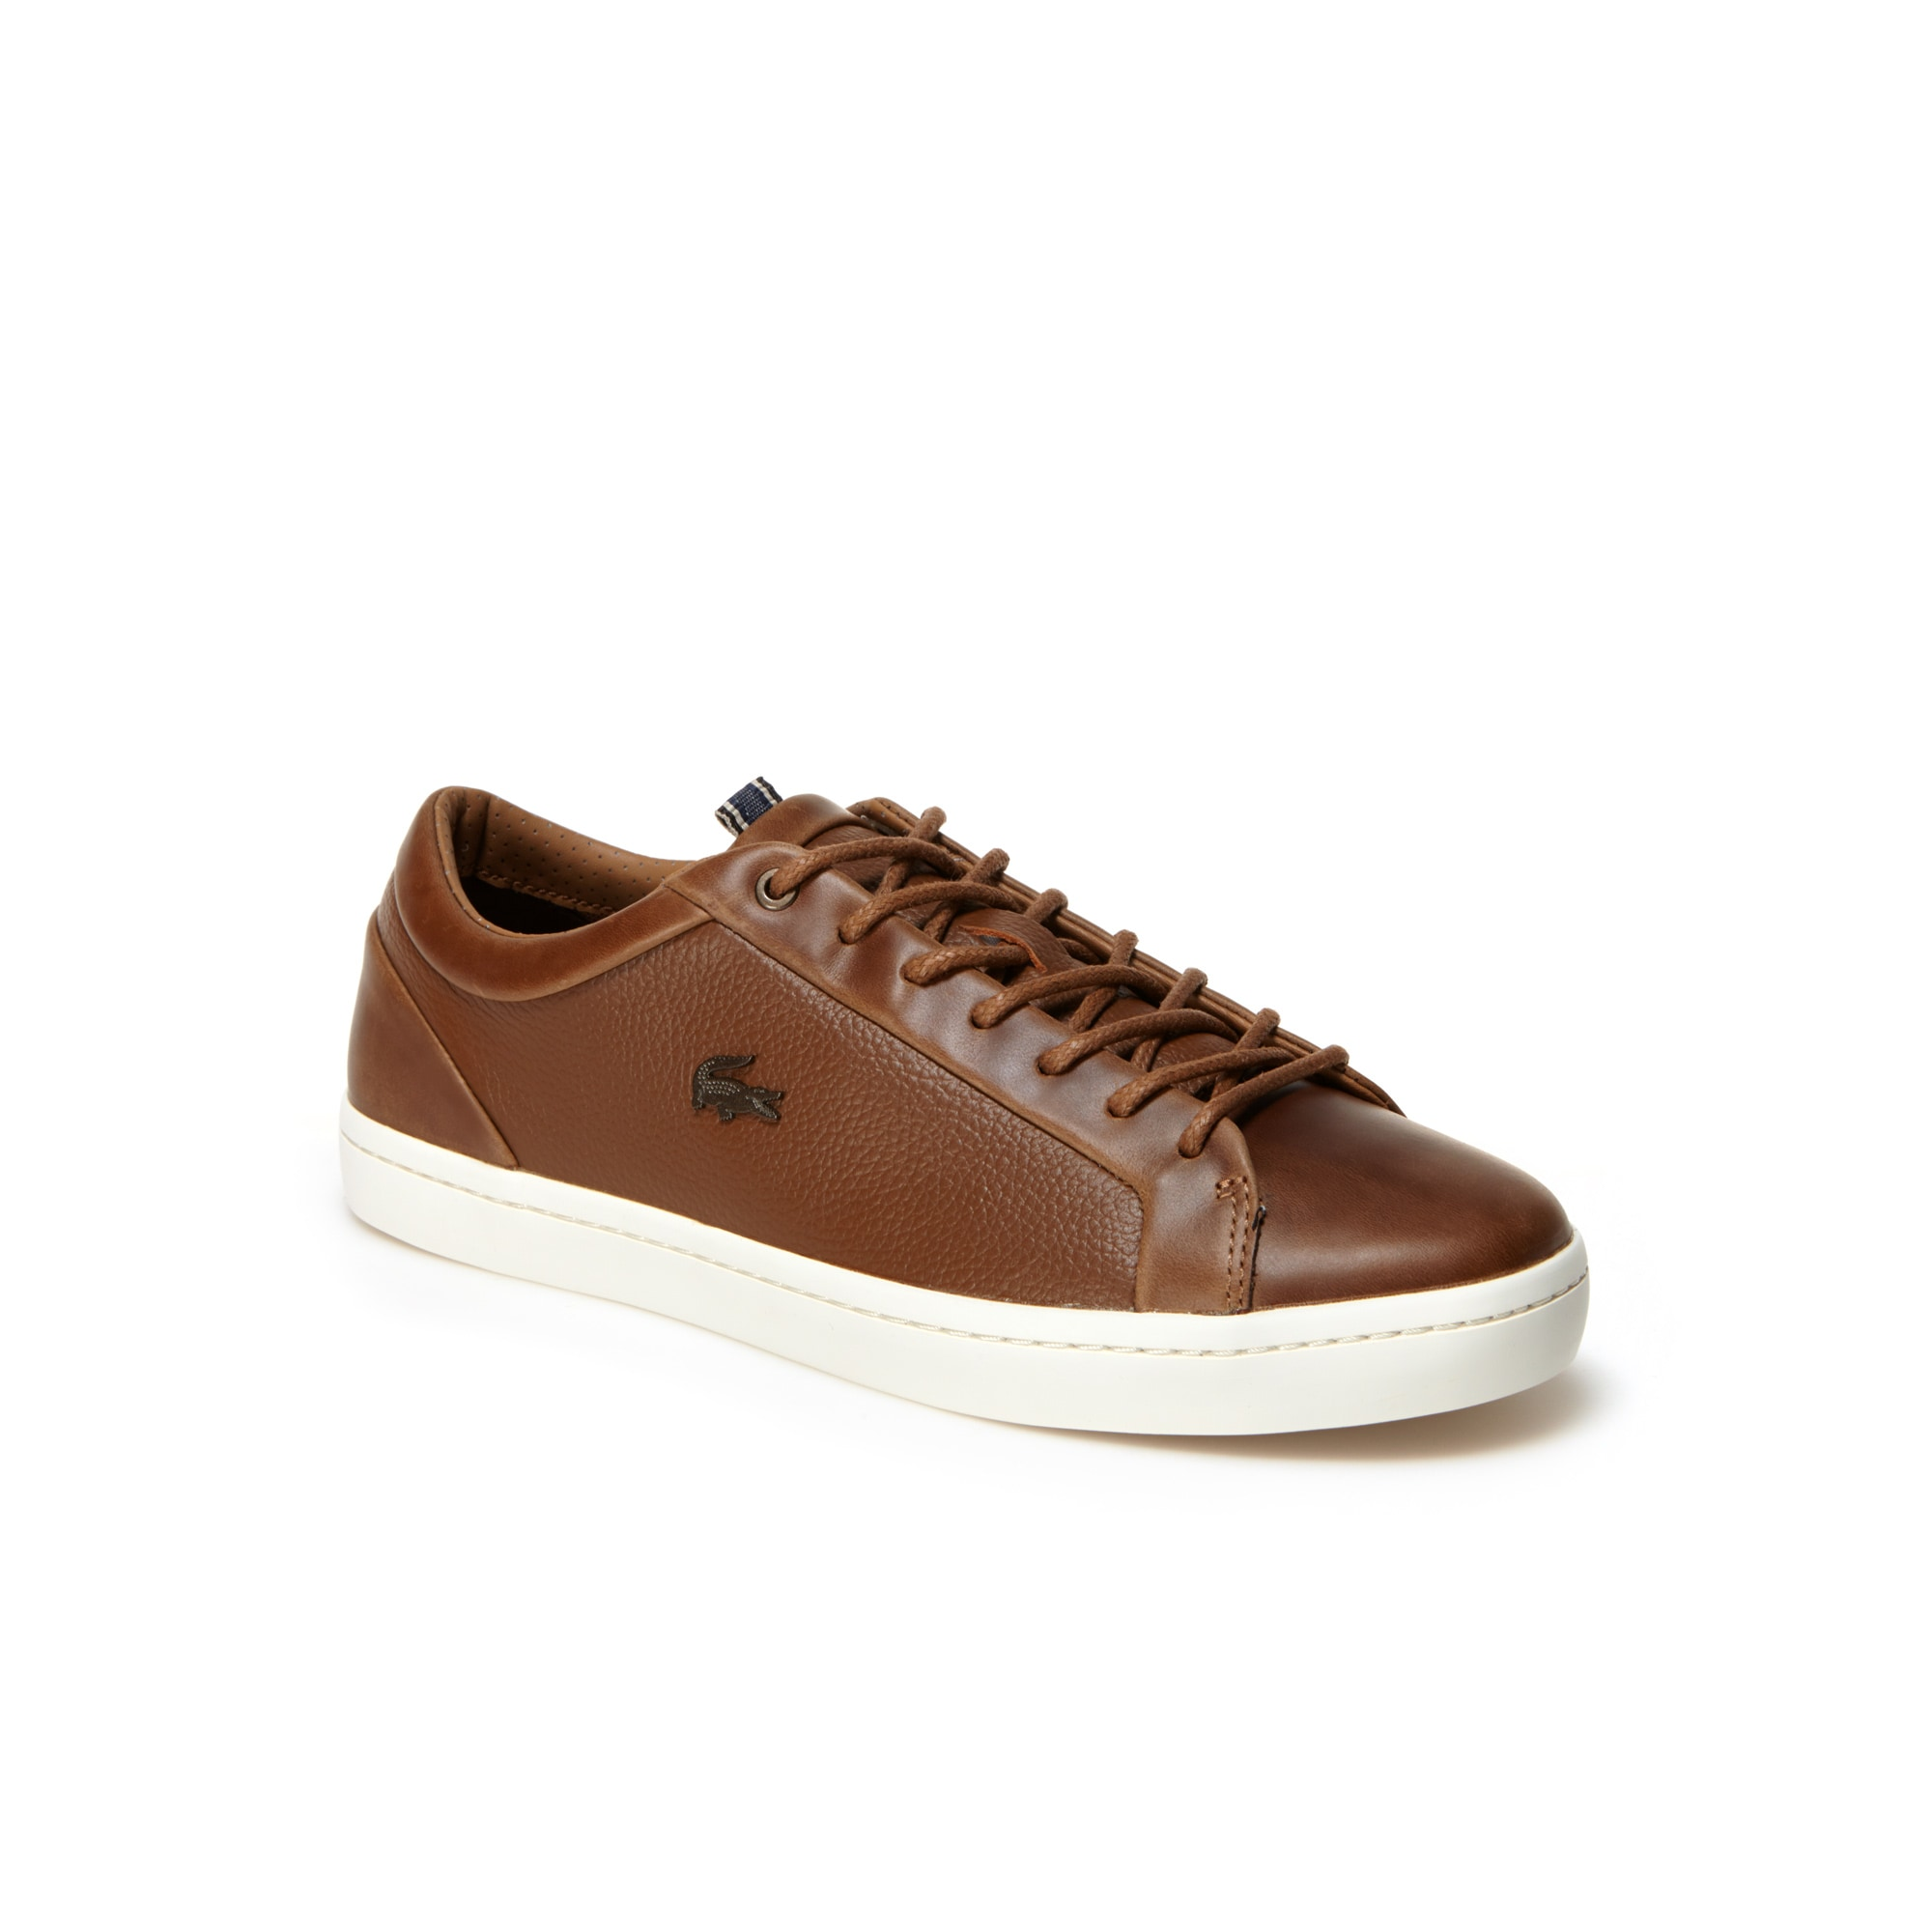 Men's Straightset Leather Sneakers